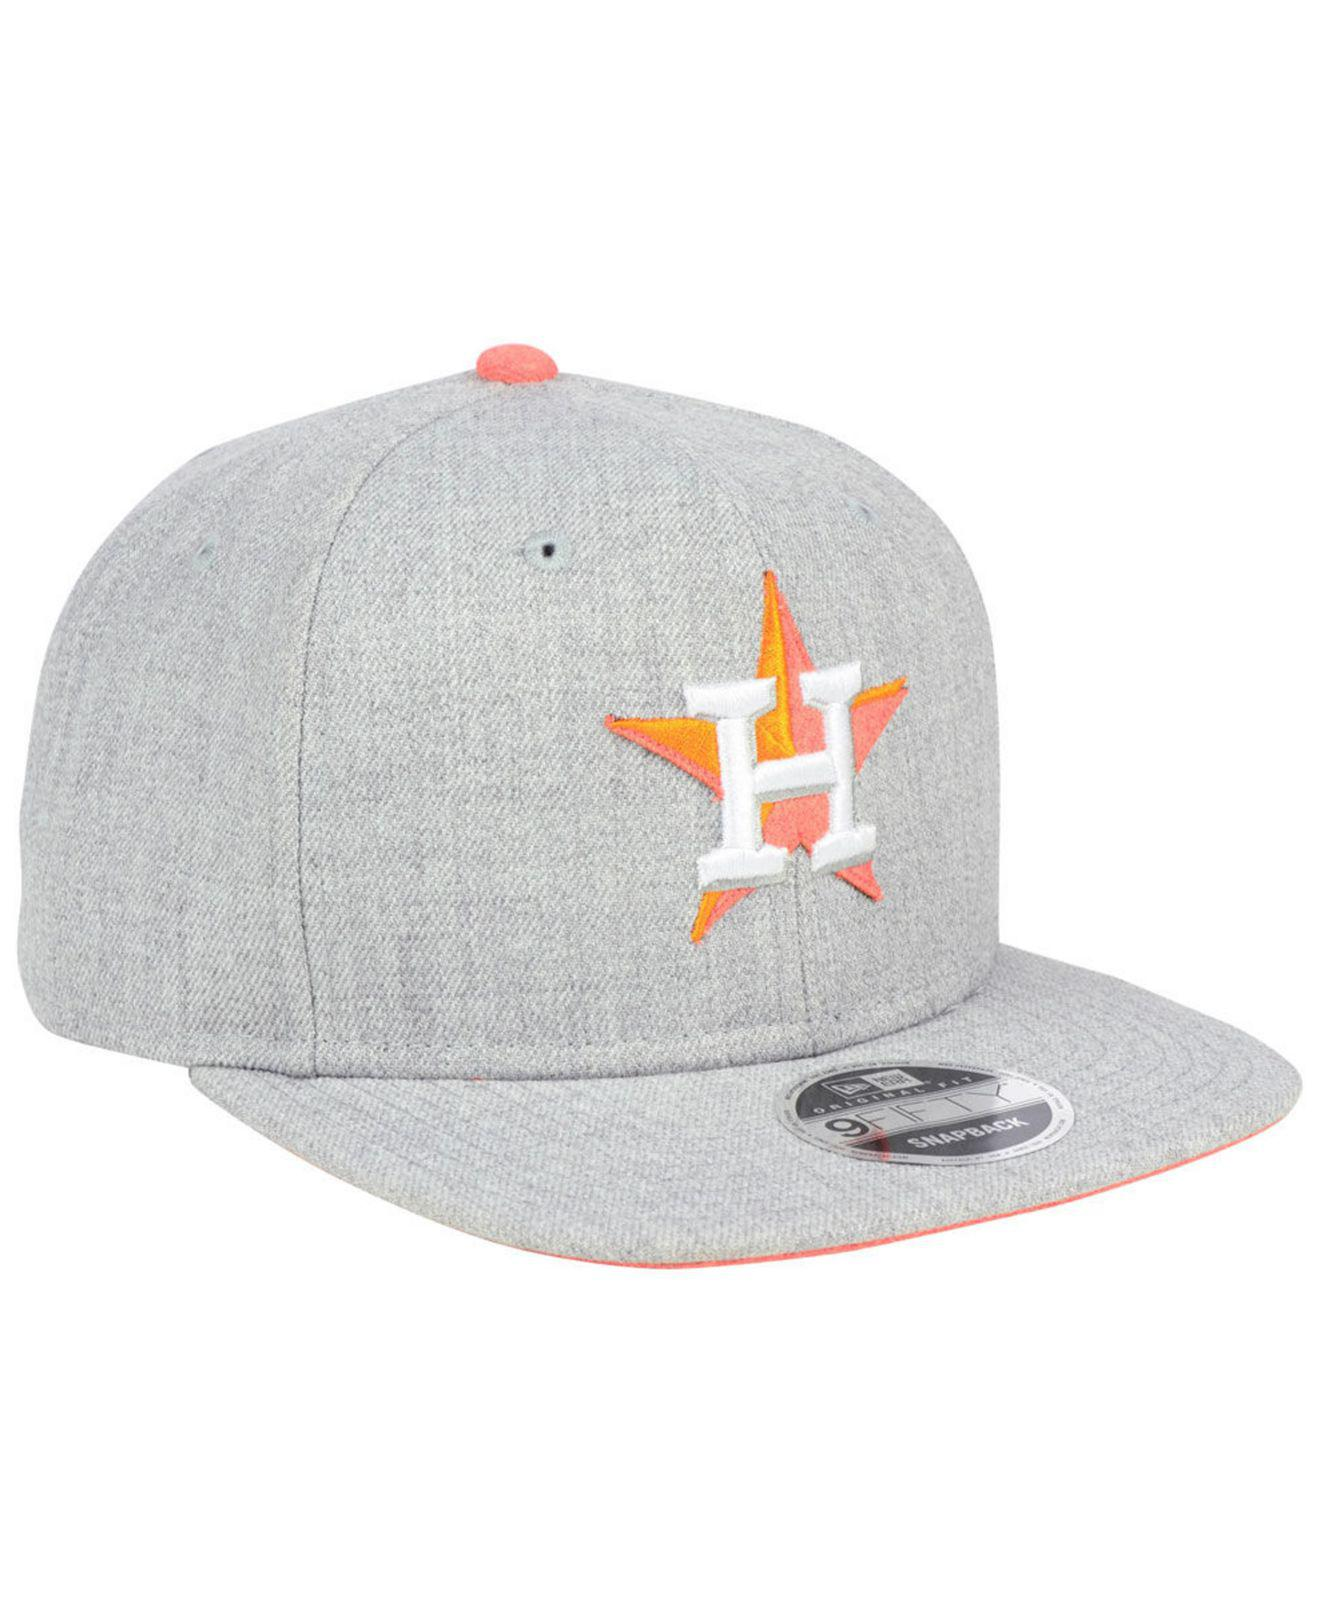 a1adf2195a5 ... new arrivals lyst ktz houston astros heather hype 9fifty snapback cap  in gray 8eb26 f81ca